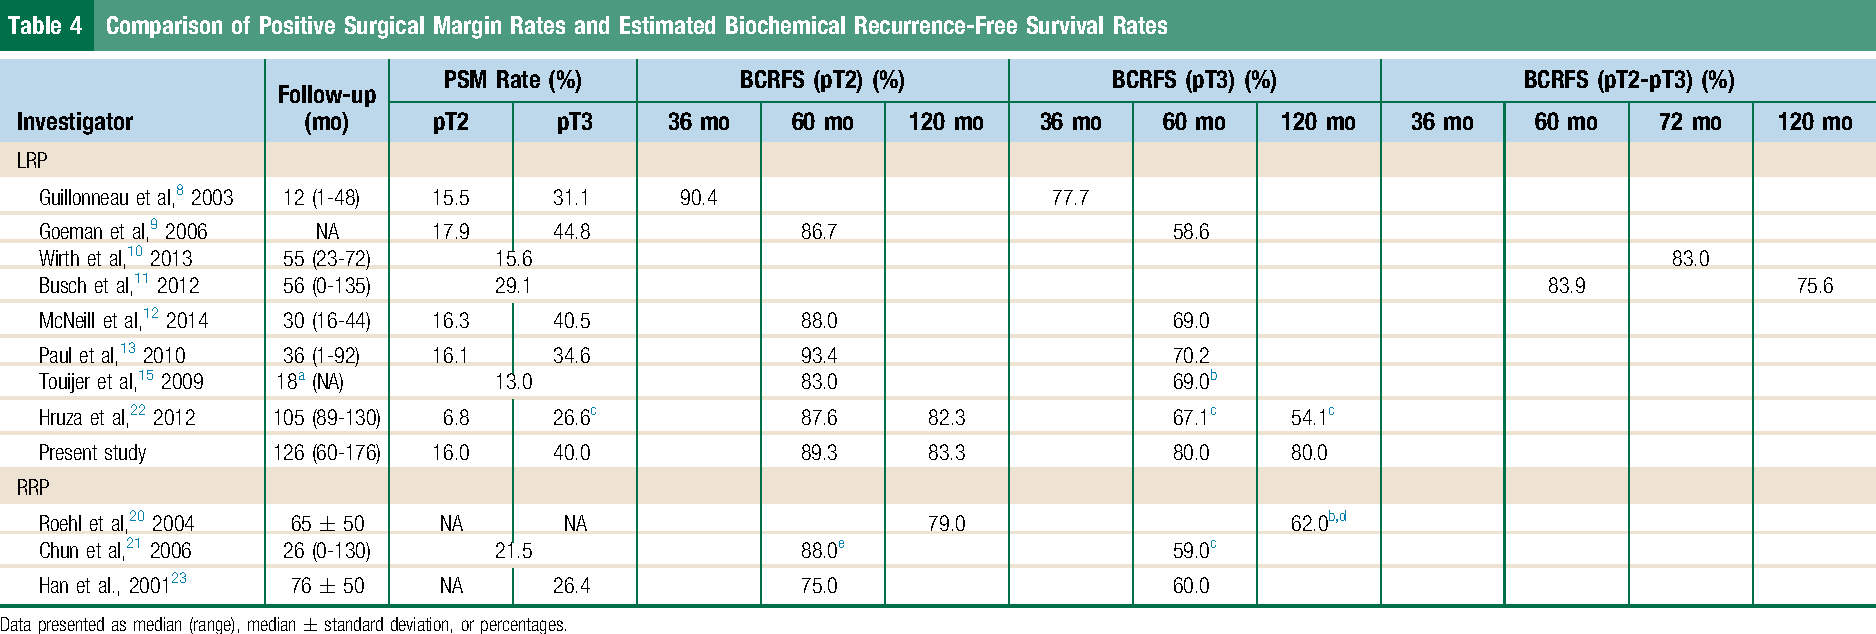 Table 4 Comparison of Positive Surgical Margin Rates and Estimated Biochemical Recurrence-Free Survival Rates